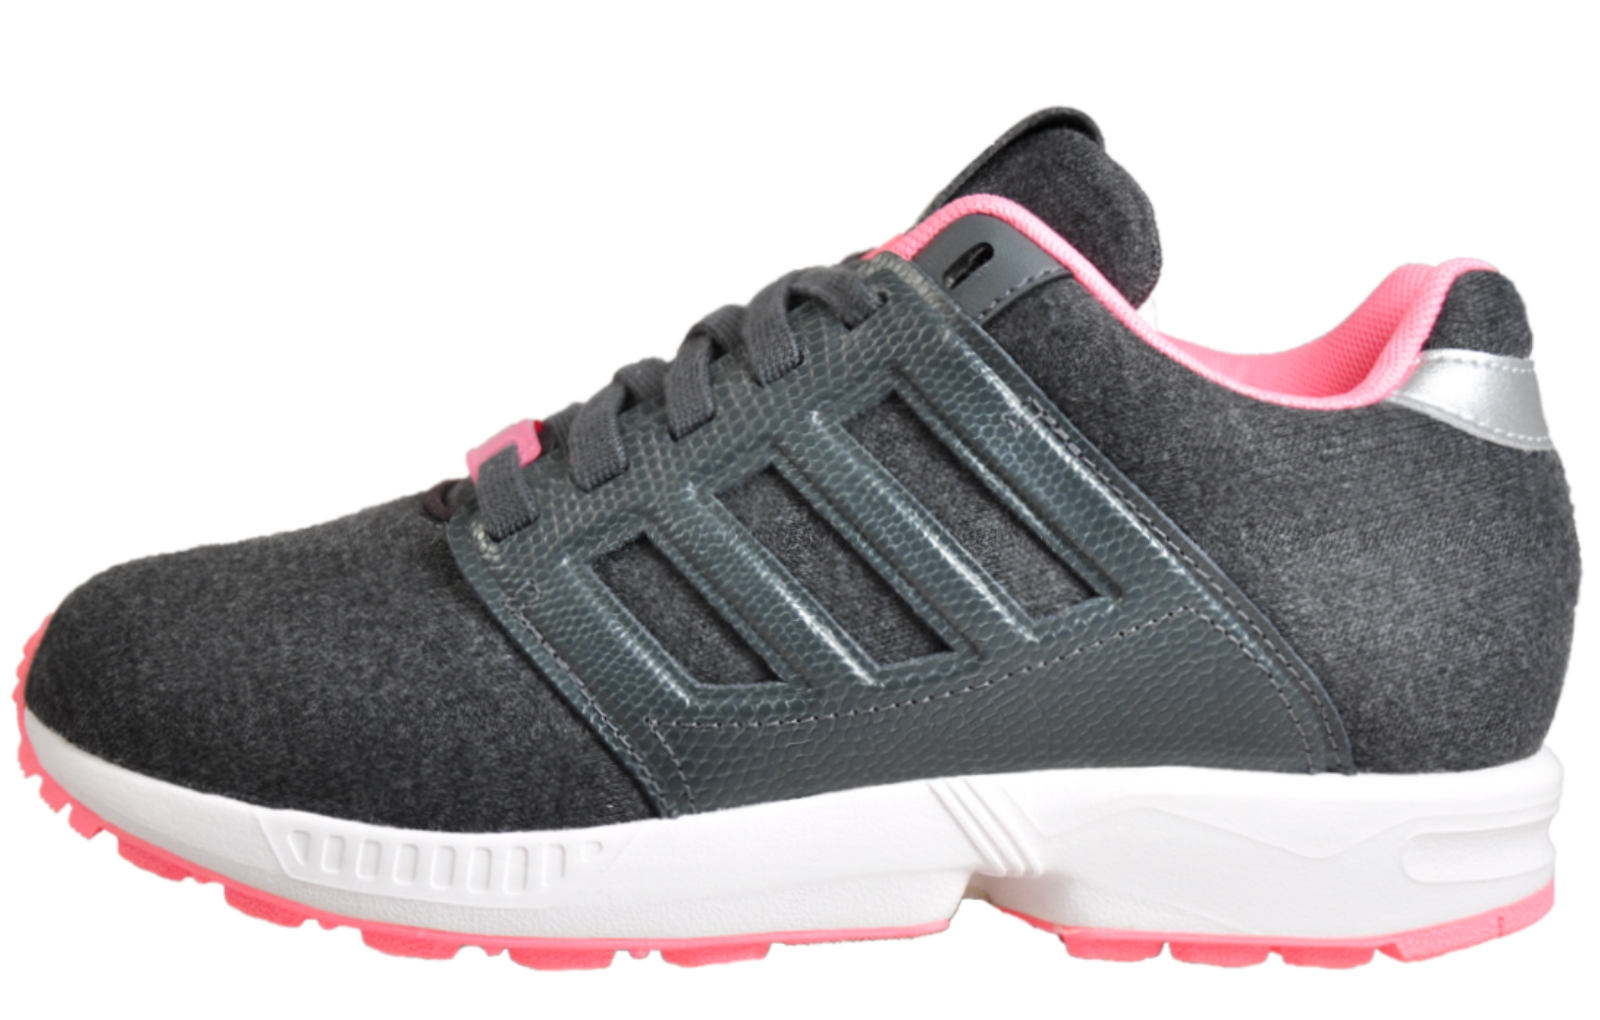 Adidas Originals ZX Flux 2.0 Womens - AD174854